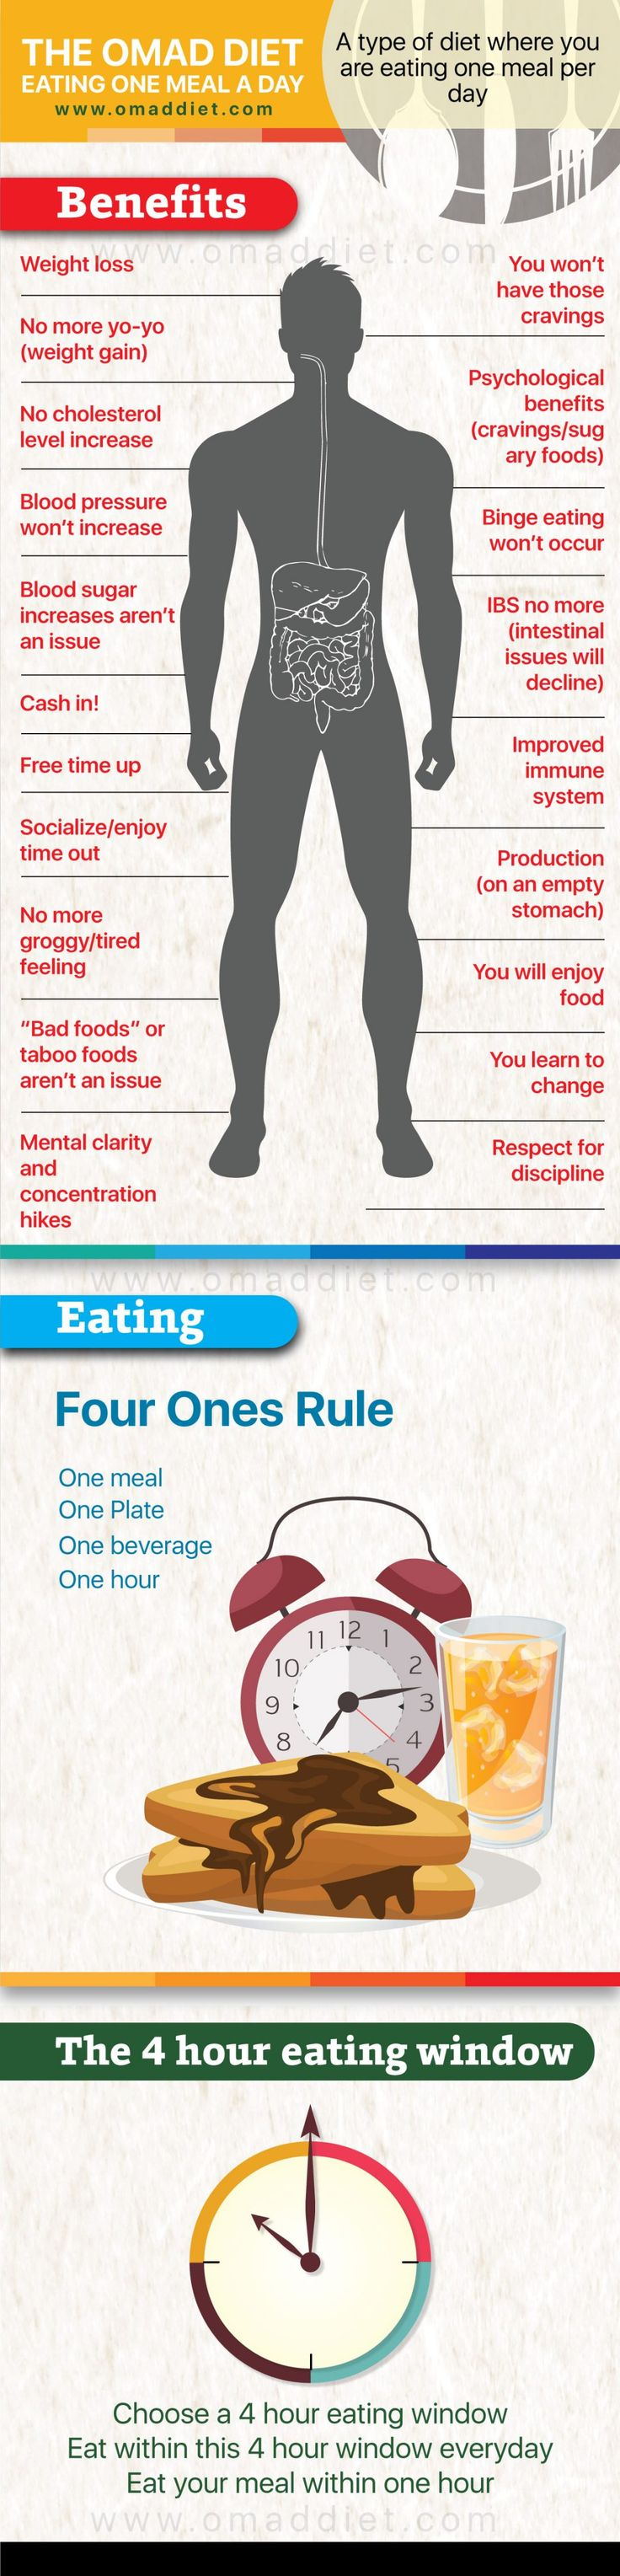 The Omad Diet – Eating One Meal a Day [Infographic]